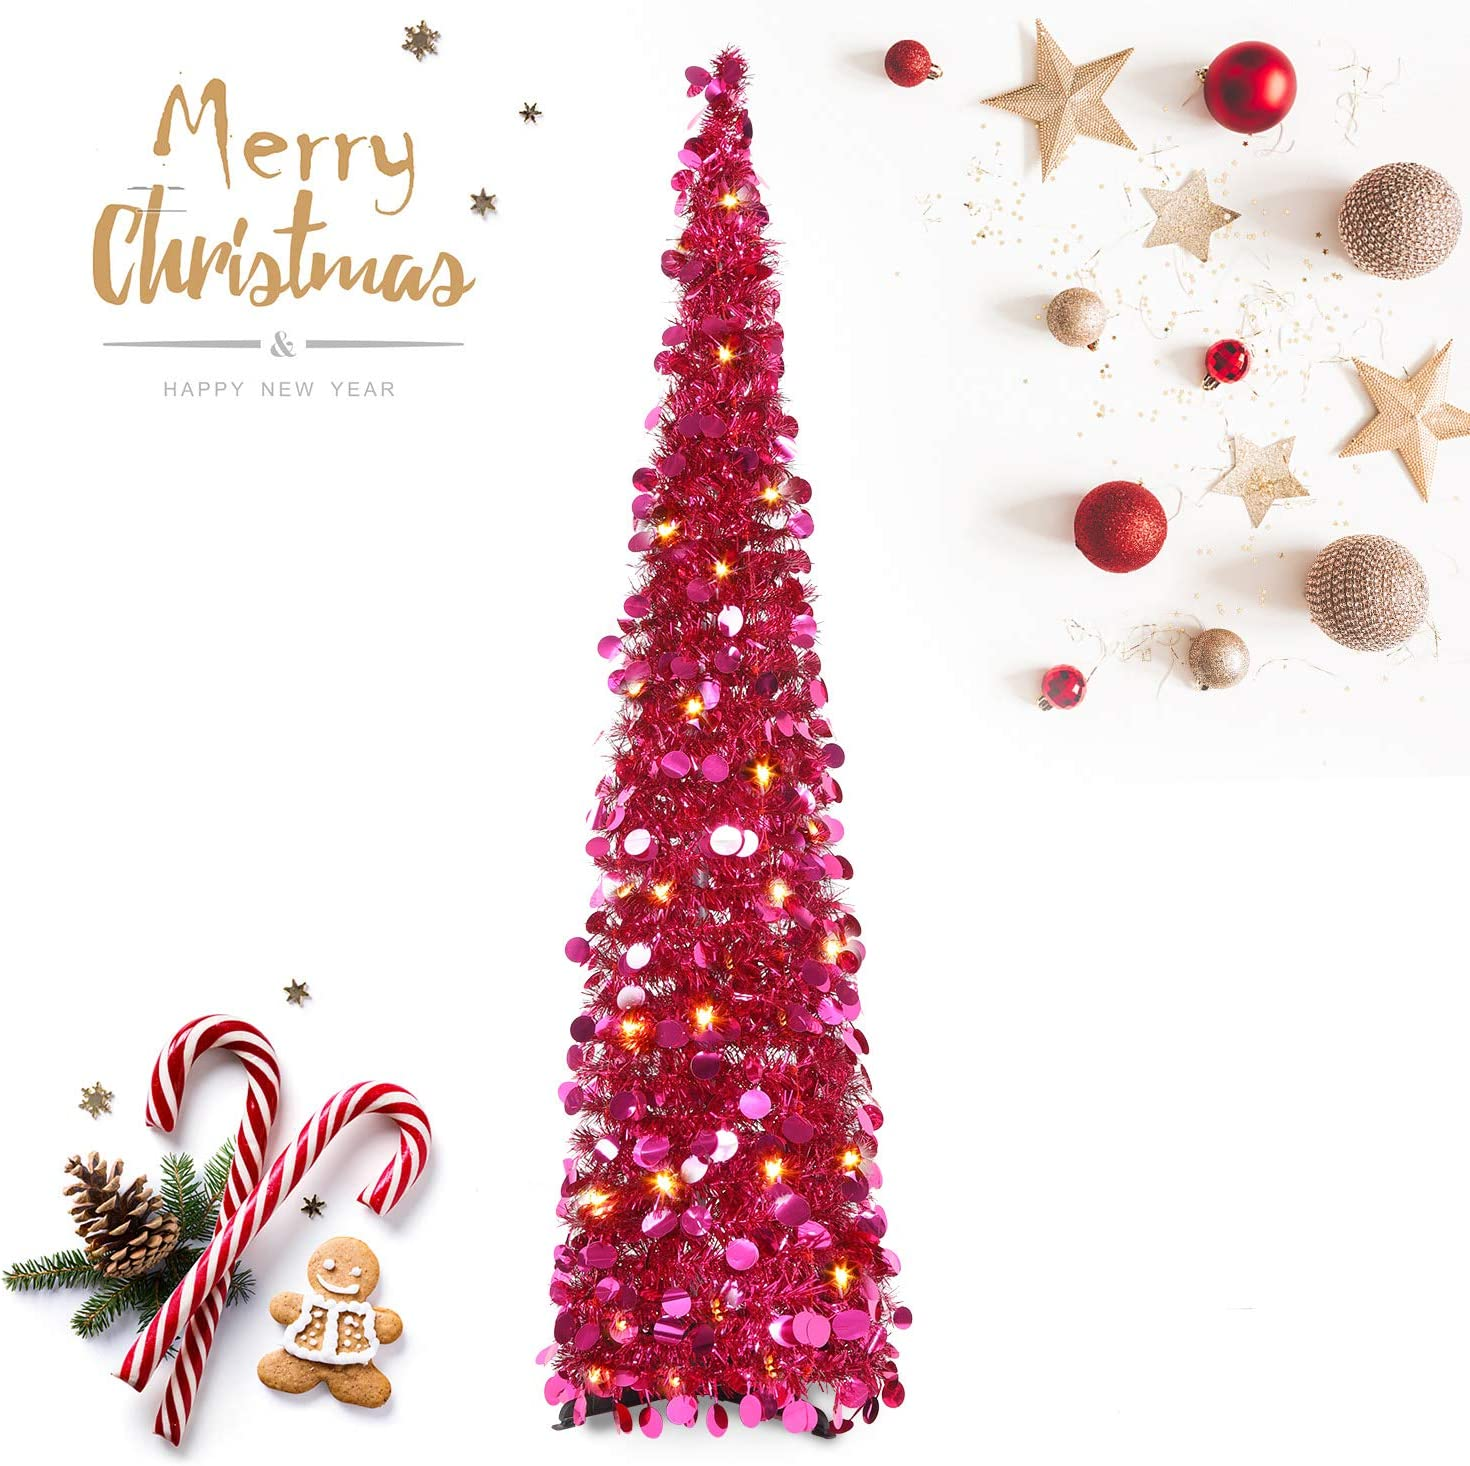 HMASYO Pop Up Tinsel Christmas Tree with Lights - 5 Foot Sequin Artificial Christmas Pencil Trees Xmas Decorations for Home Office Fireplace Party, Collapsible and Easy to Assemble (5 Foot - Red)